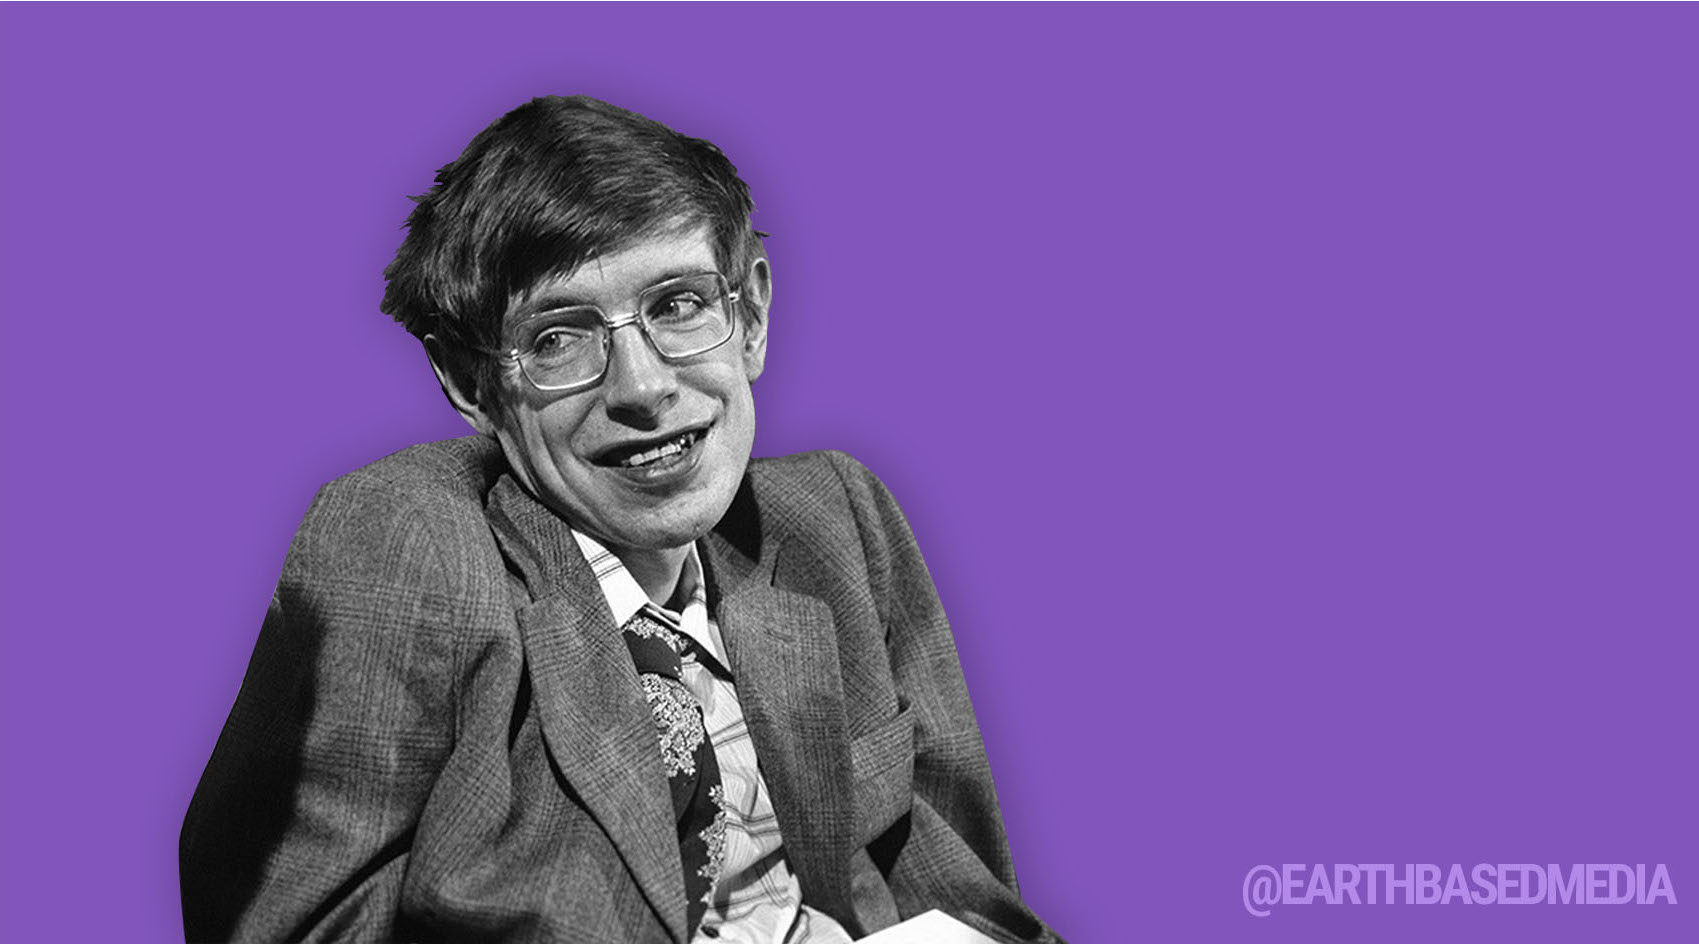 A Tribute to Stephen Hawking. The Brightest Mind In the Universe (That We Know Of)